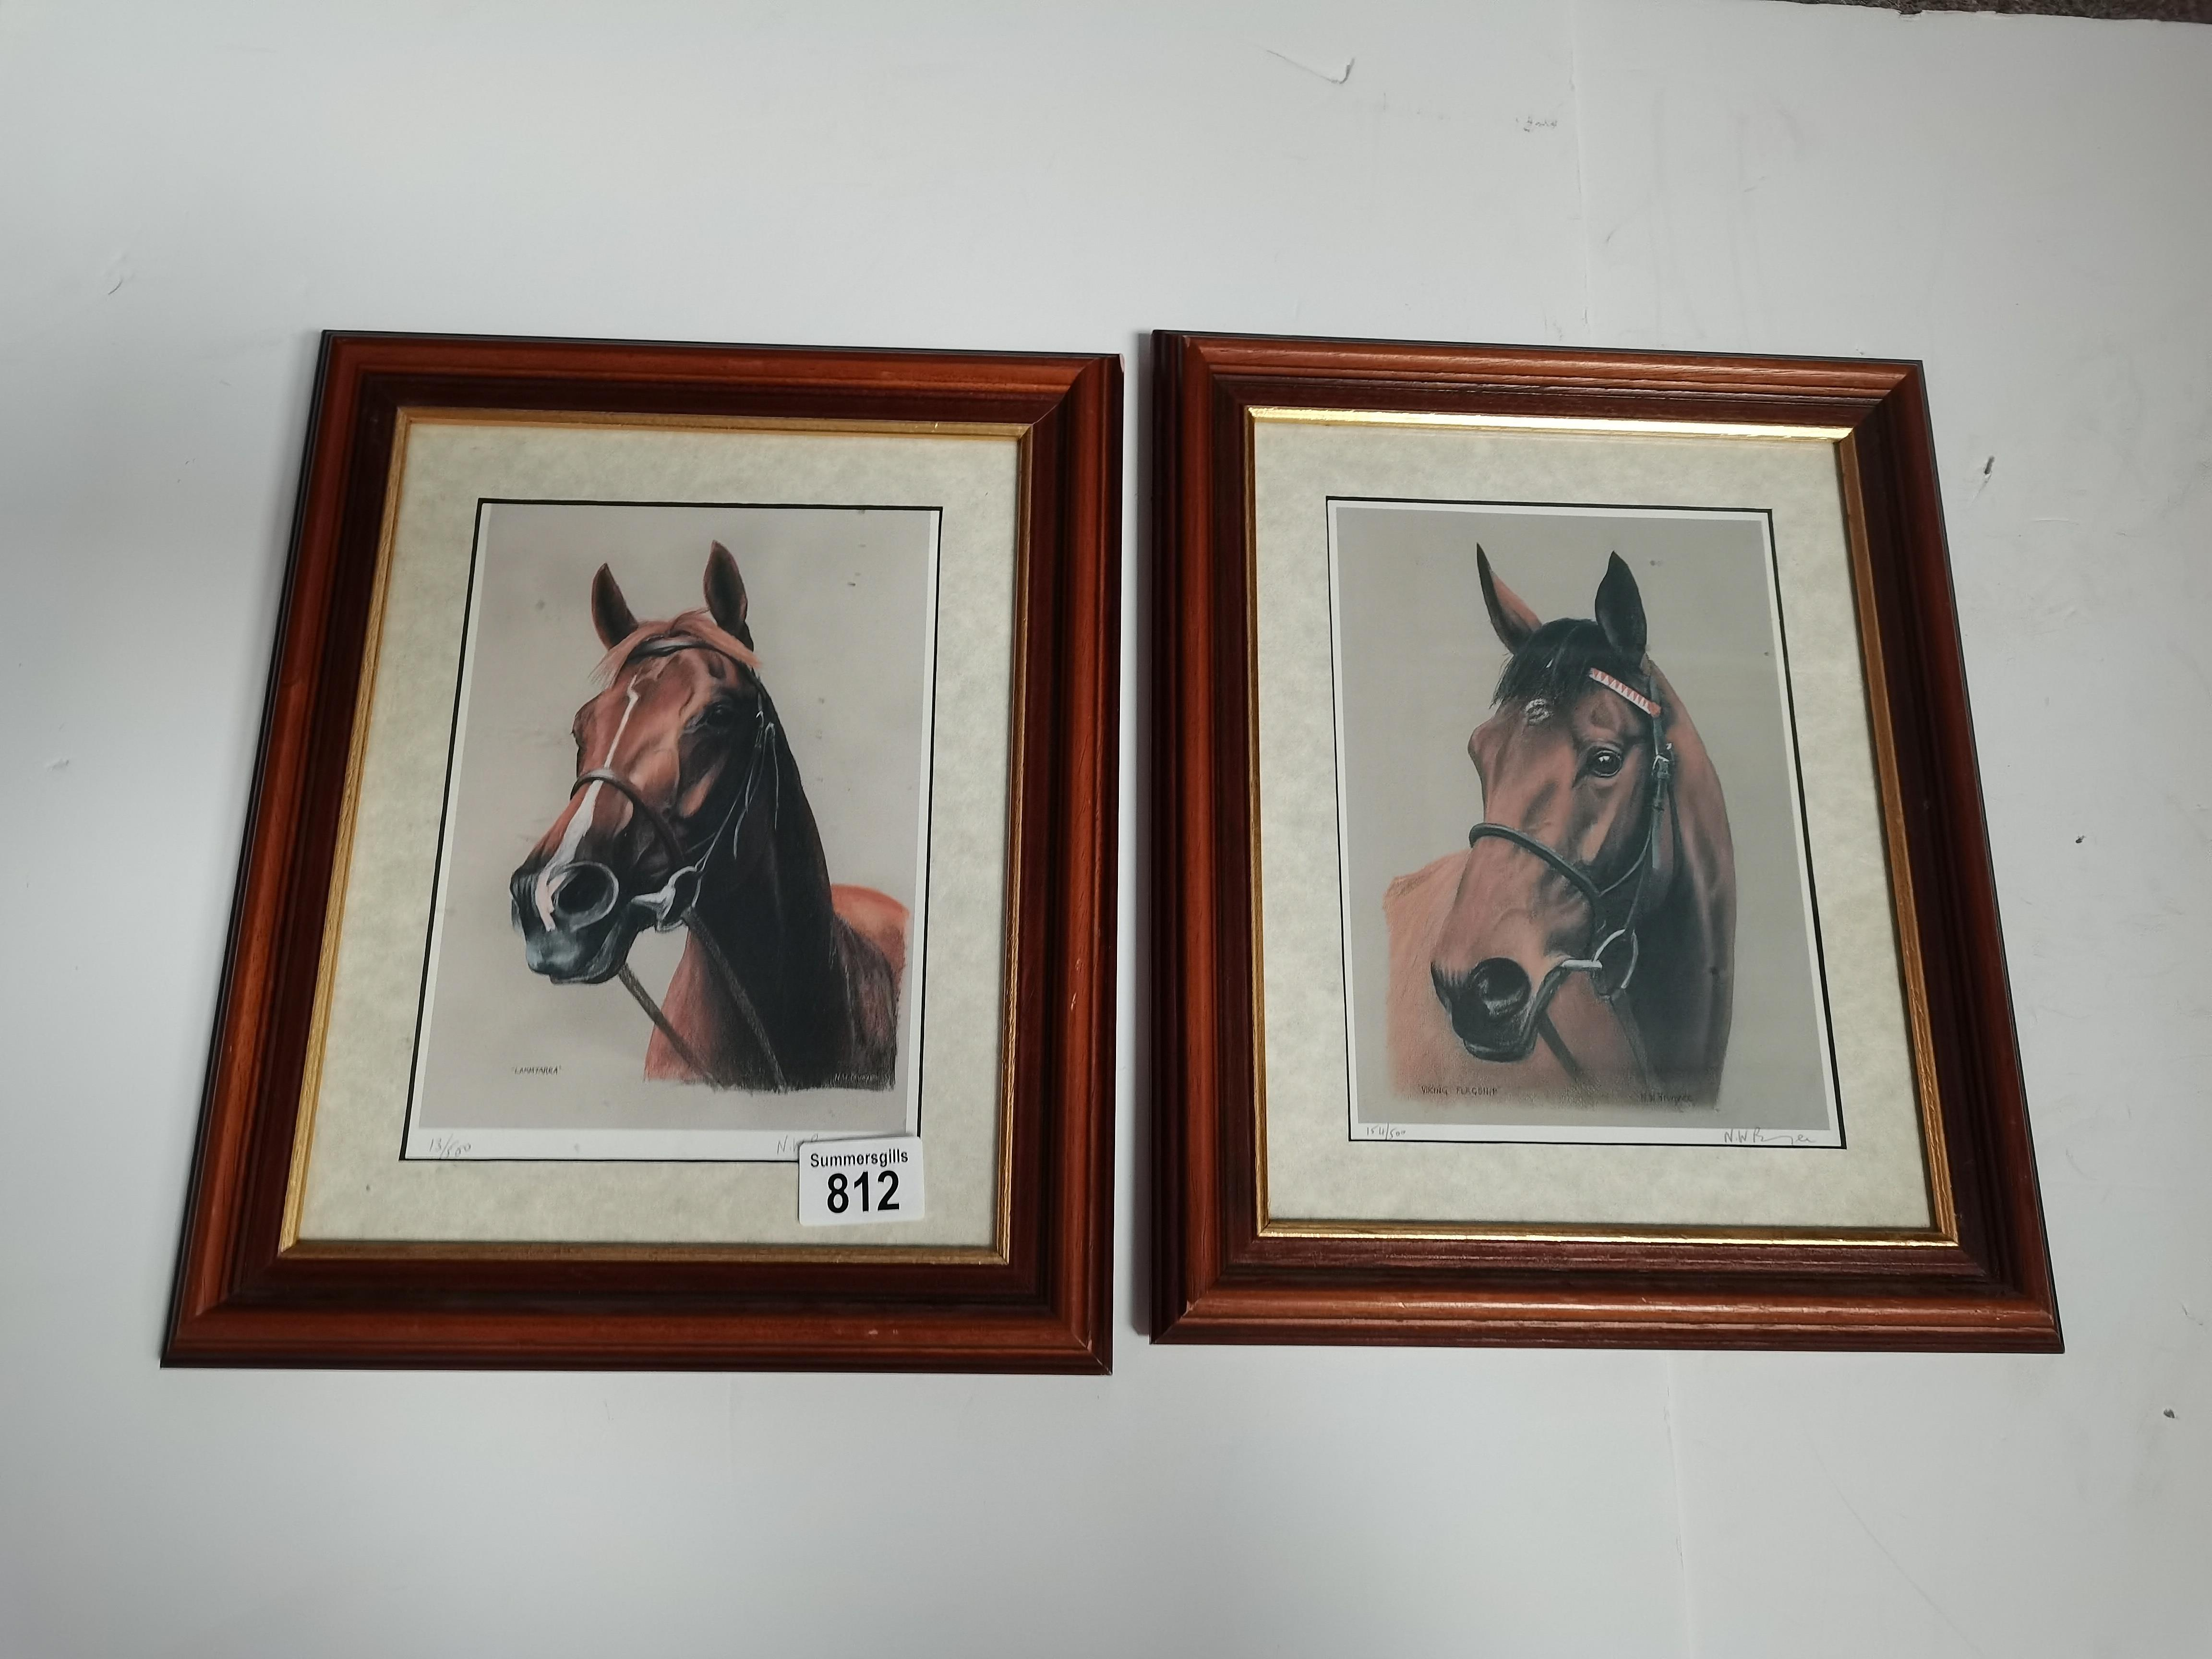 """4 Small Paintings of Horses by """"NW Brunyee"""", 1 Print of Nginsky 1 John Austin Print 2 other Pictures - Image 8 of 8"""